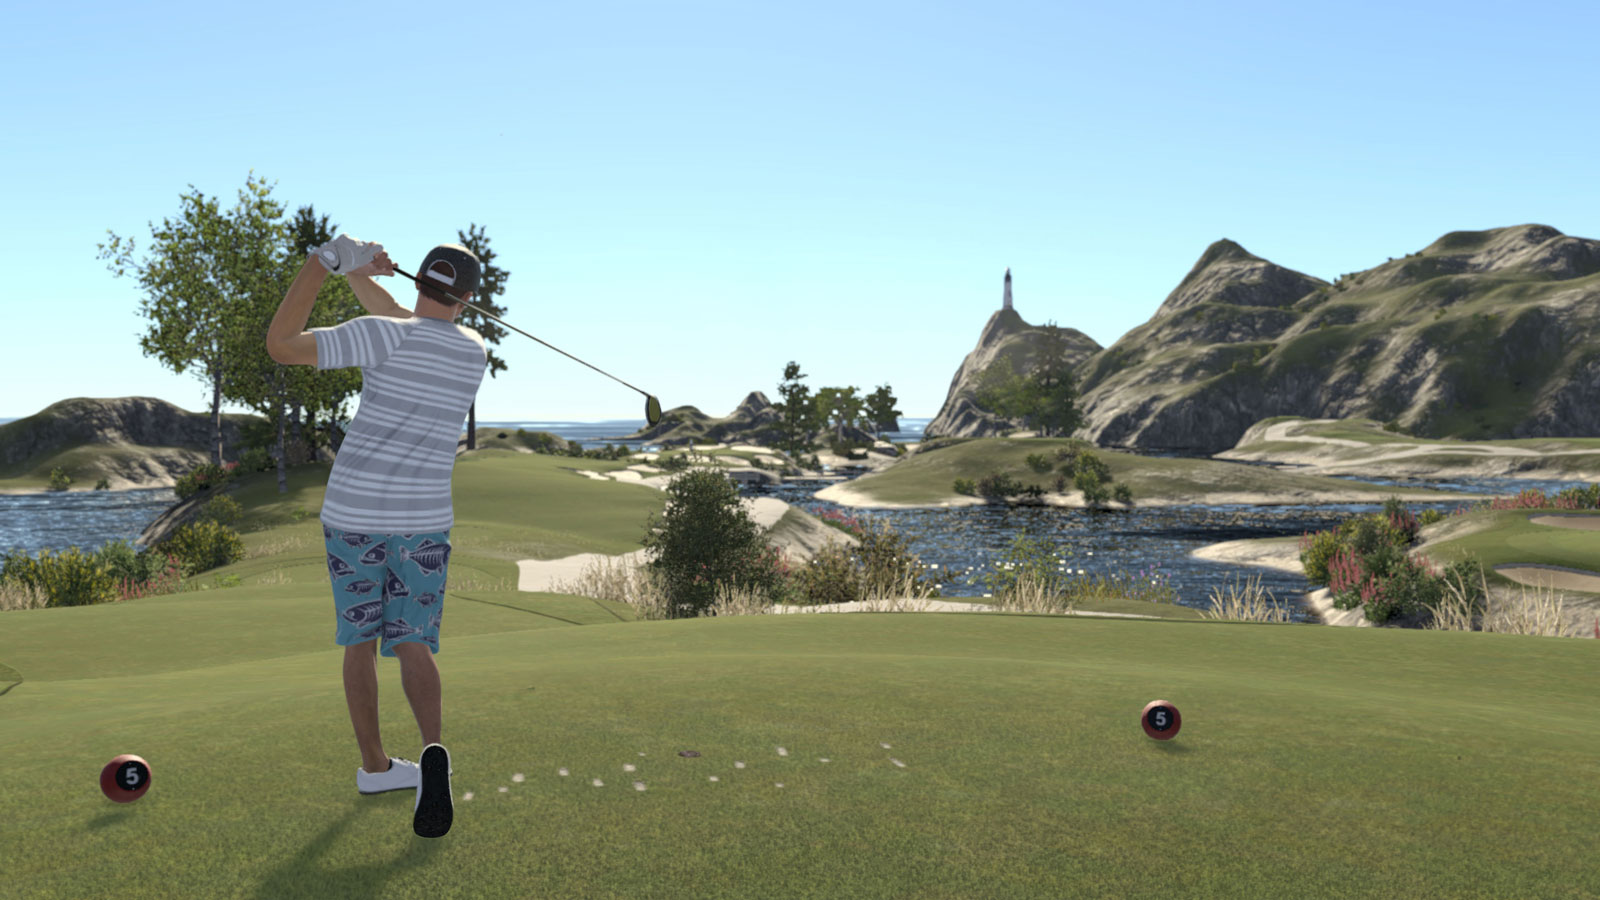 The Golf Club 2 - golfing by a lighthouse